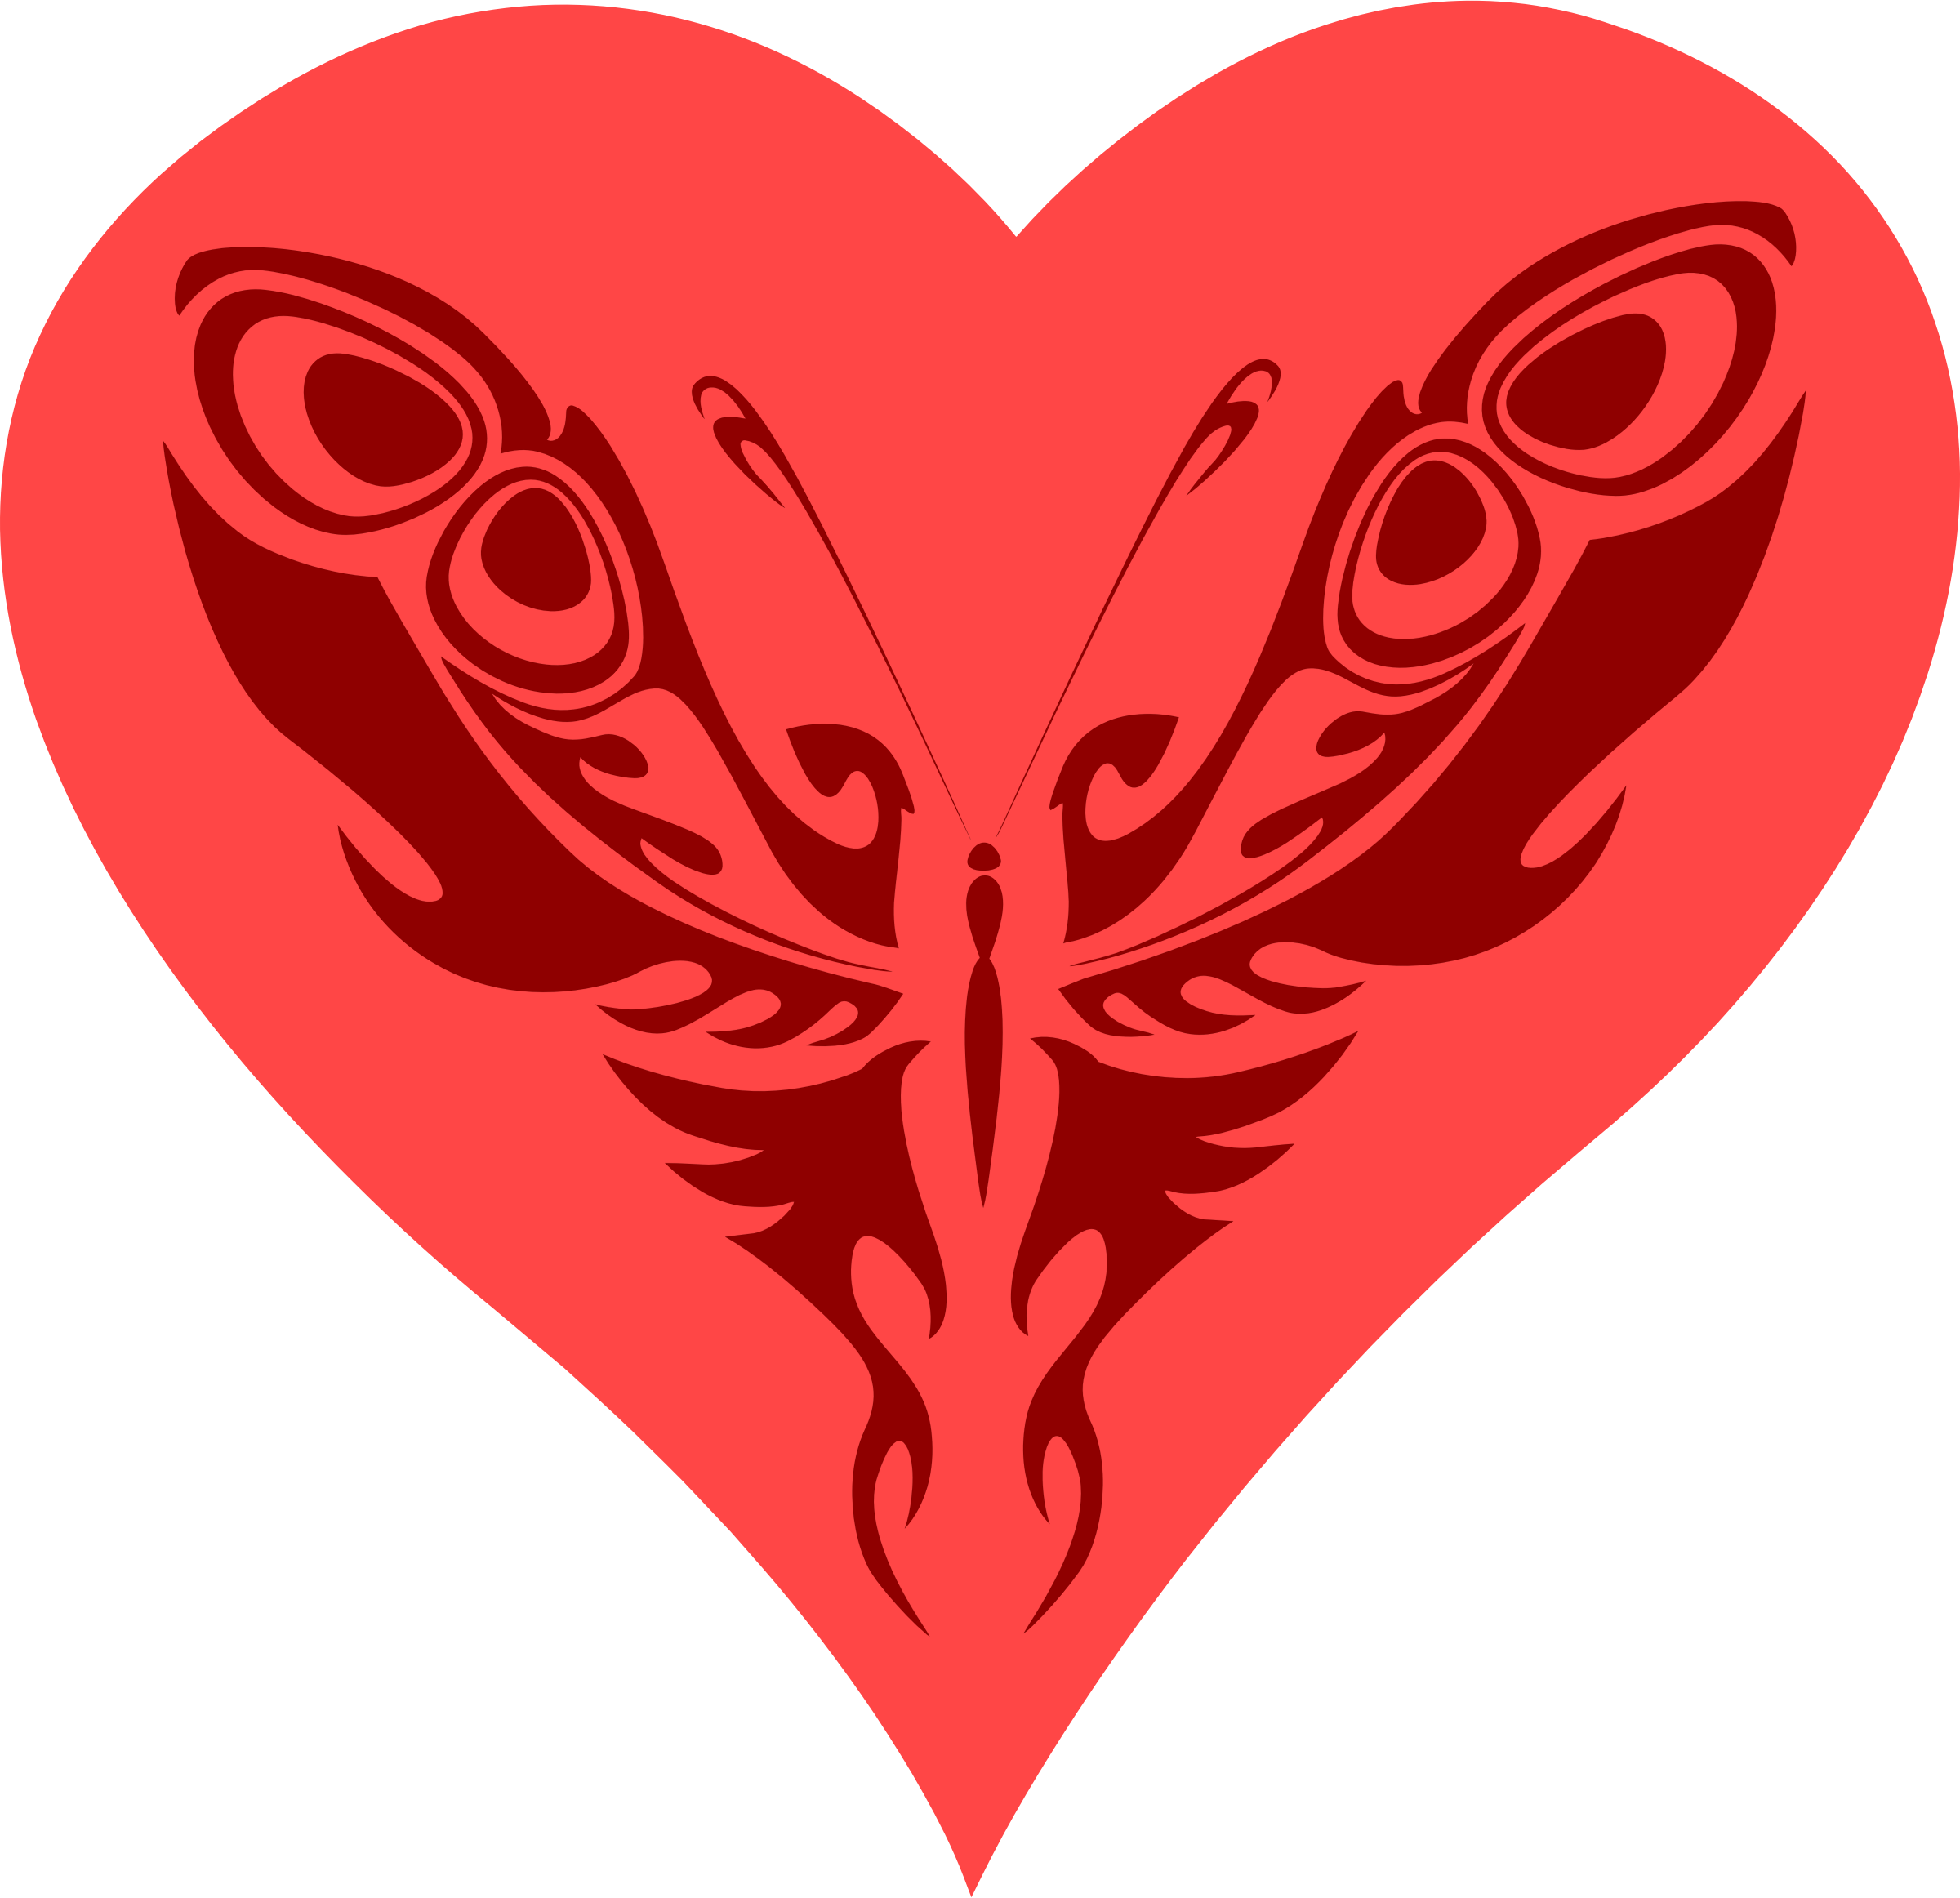 Heart clipart butterfly. Big image png